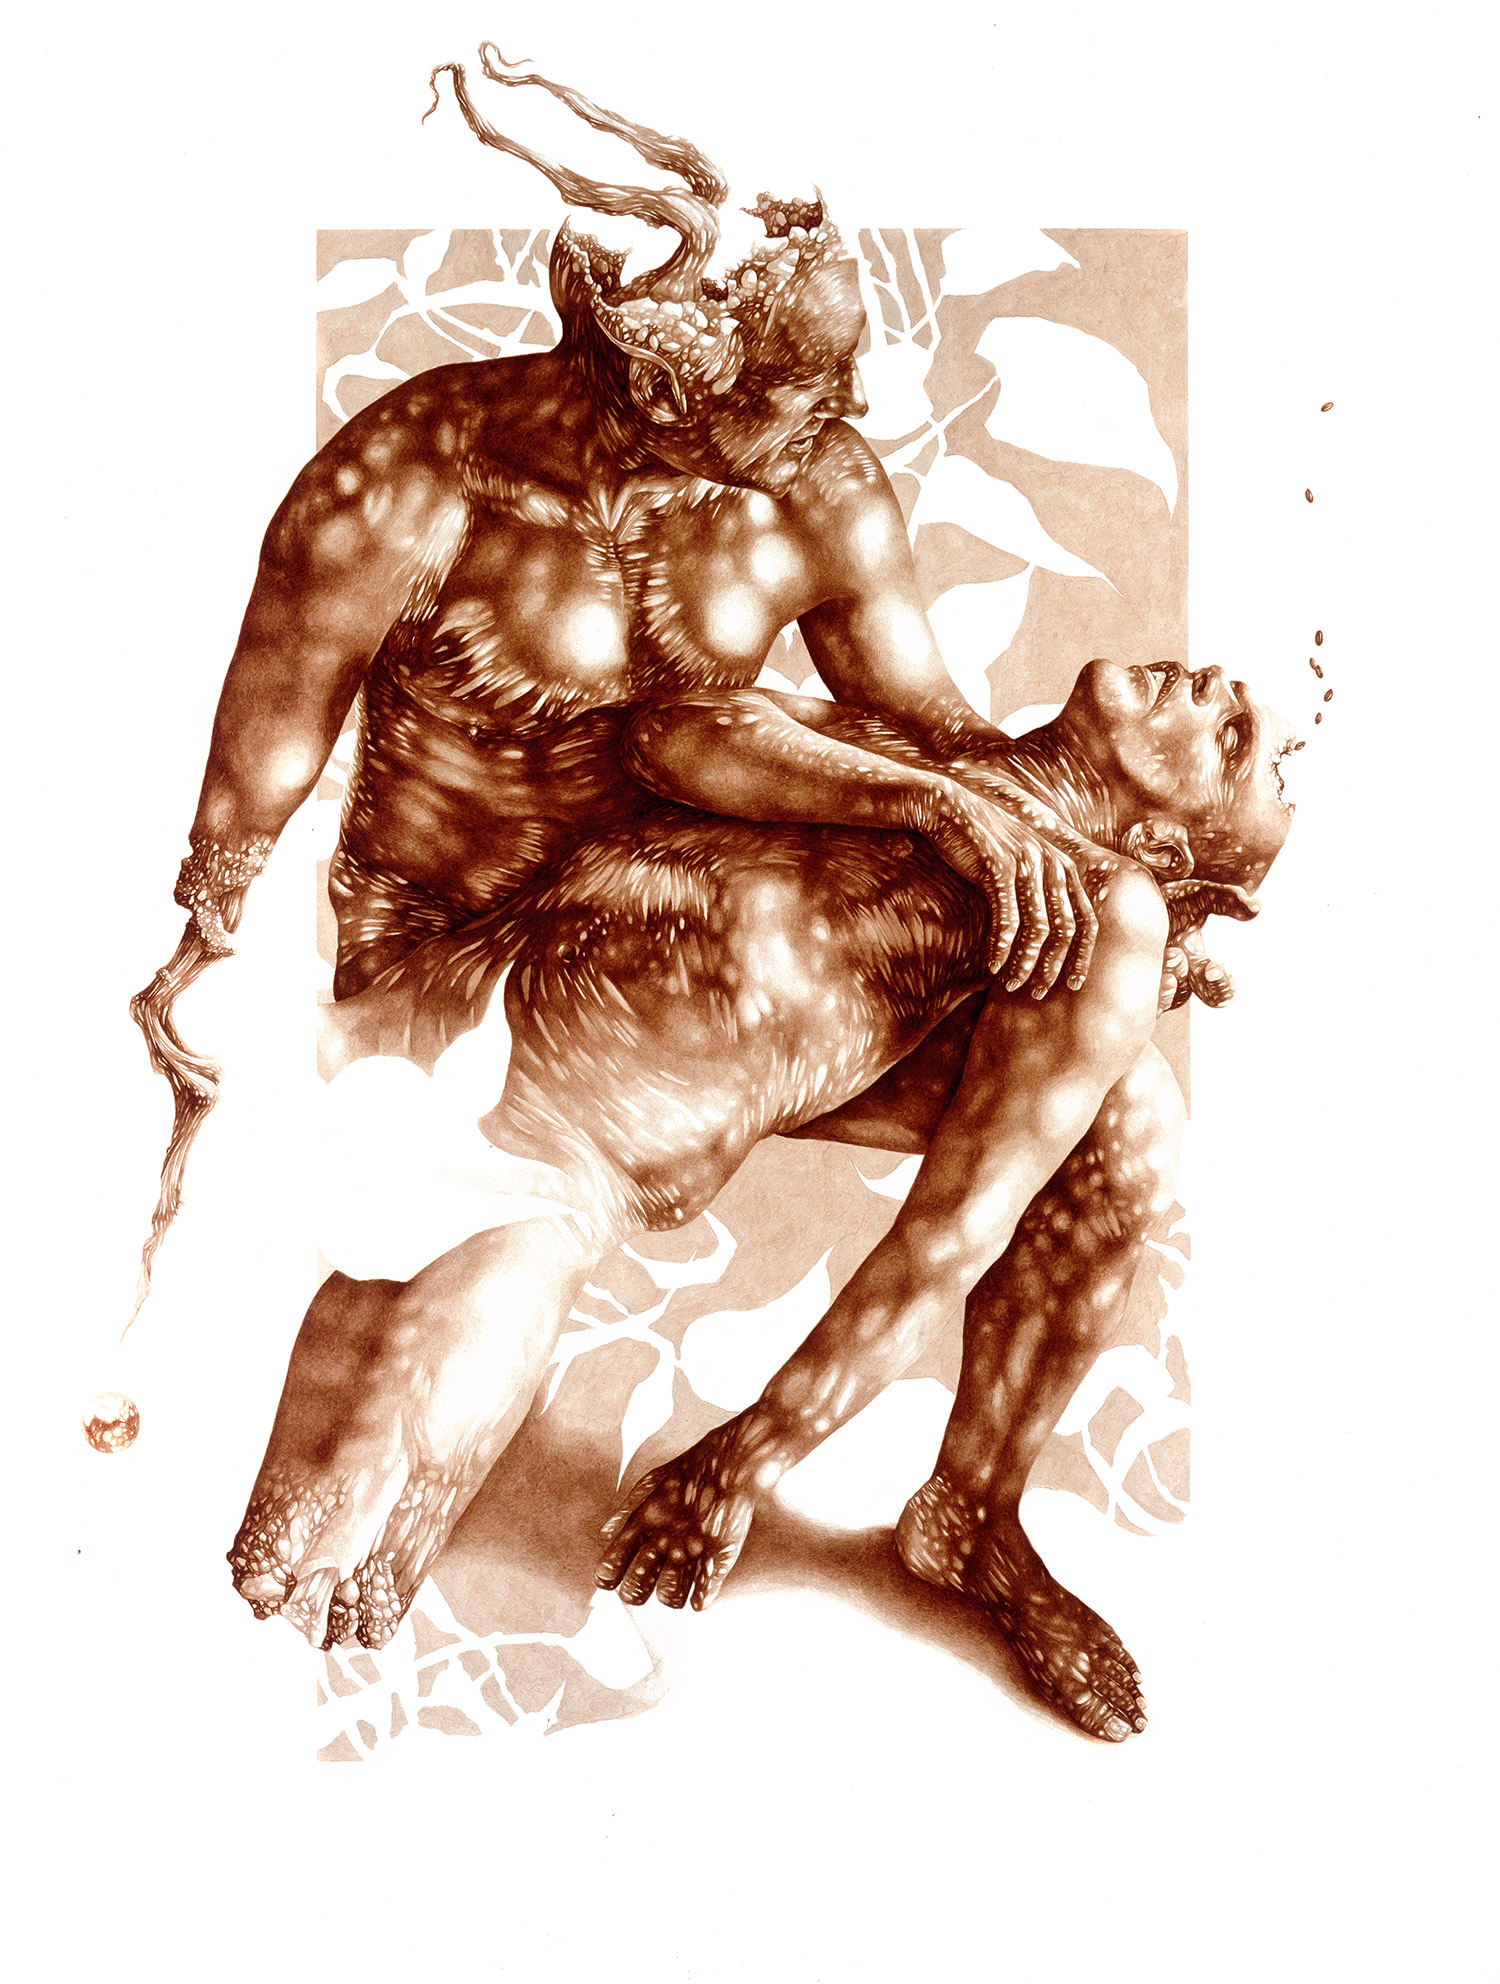 Vincent Castiglia - The Sleep, blood painting